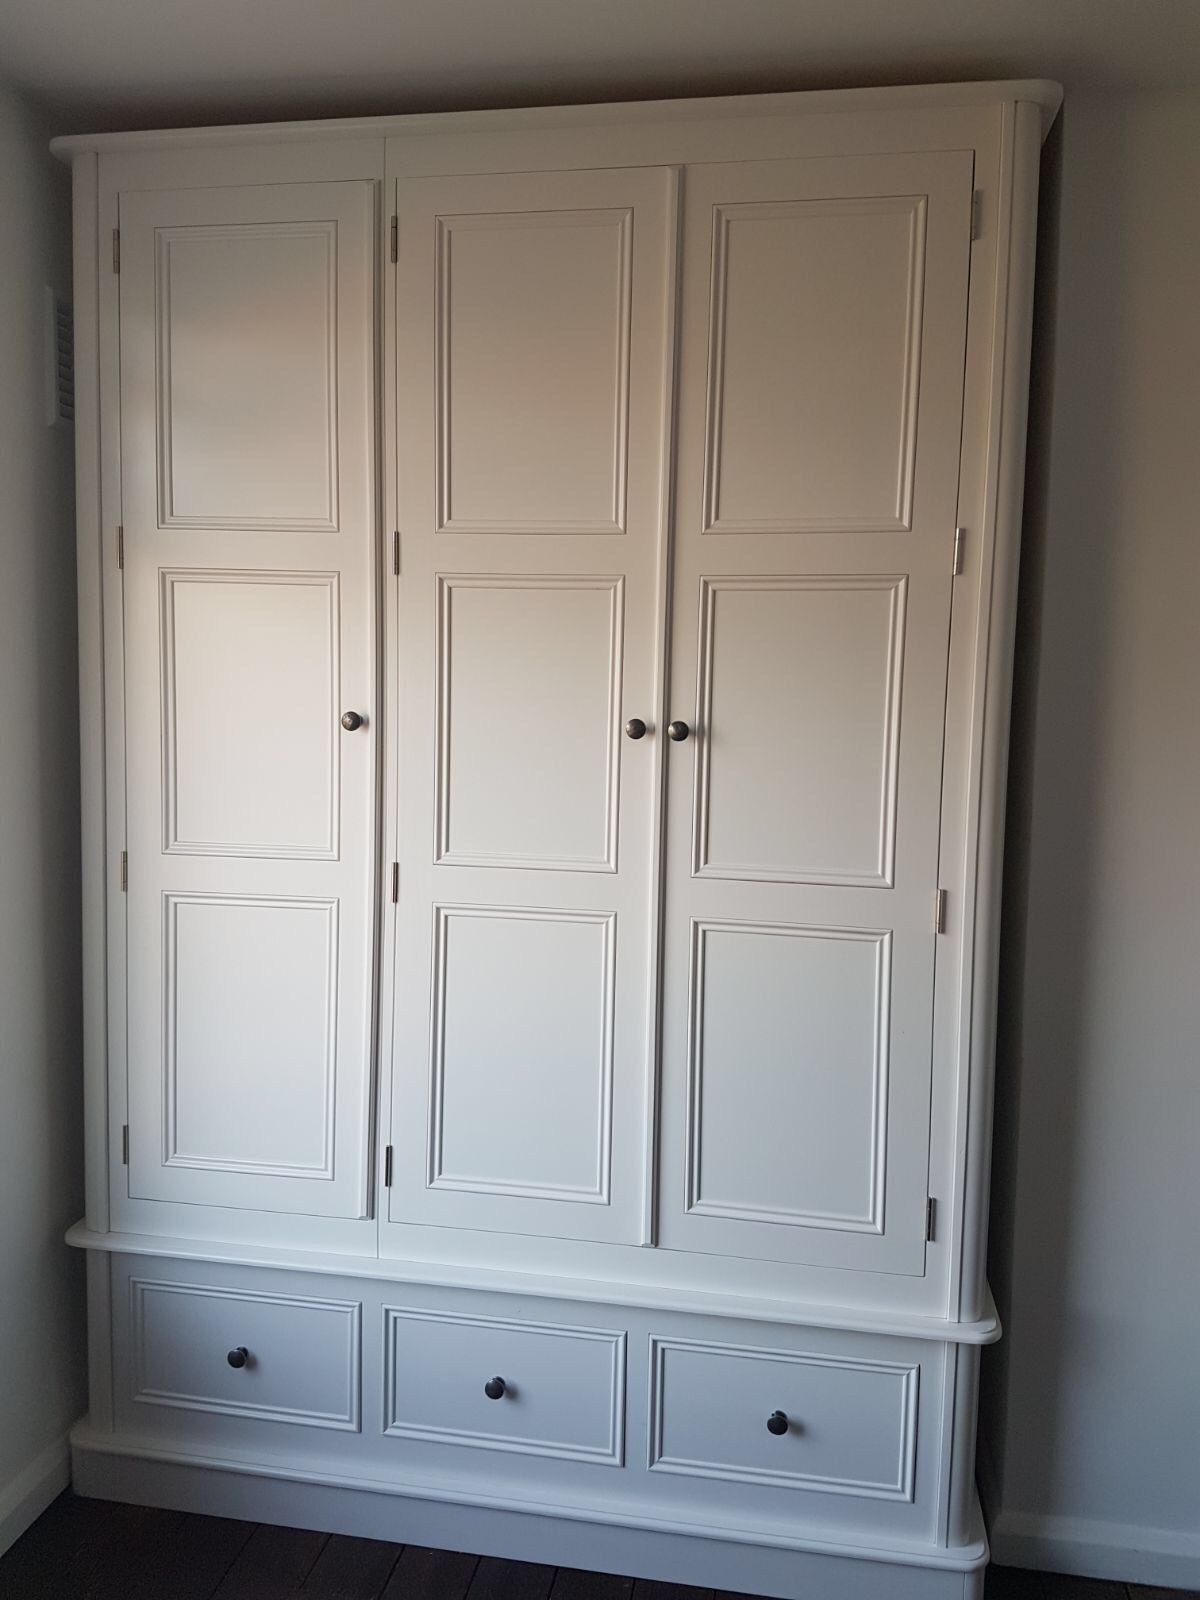 3 Drawer & 3 Door Wardrobe